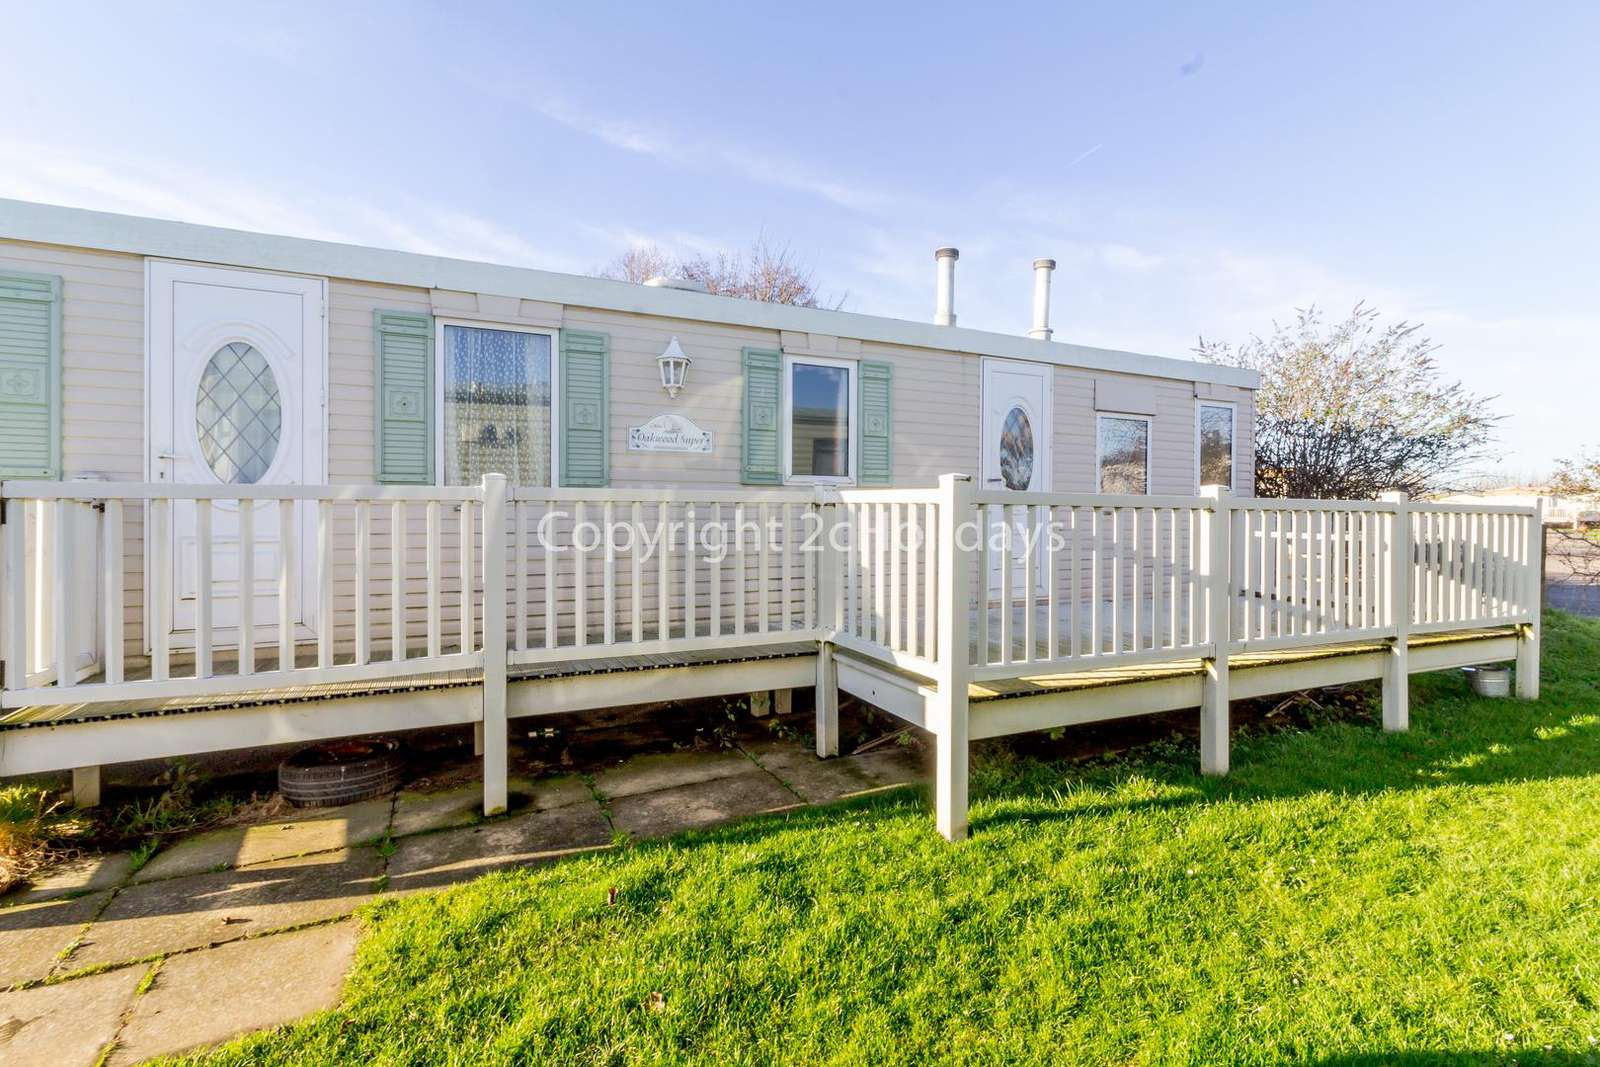 Great 6 berth mobile home on a brilliant holiday park - property